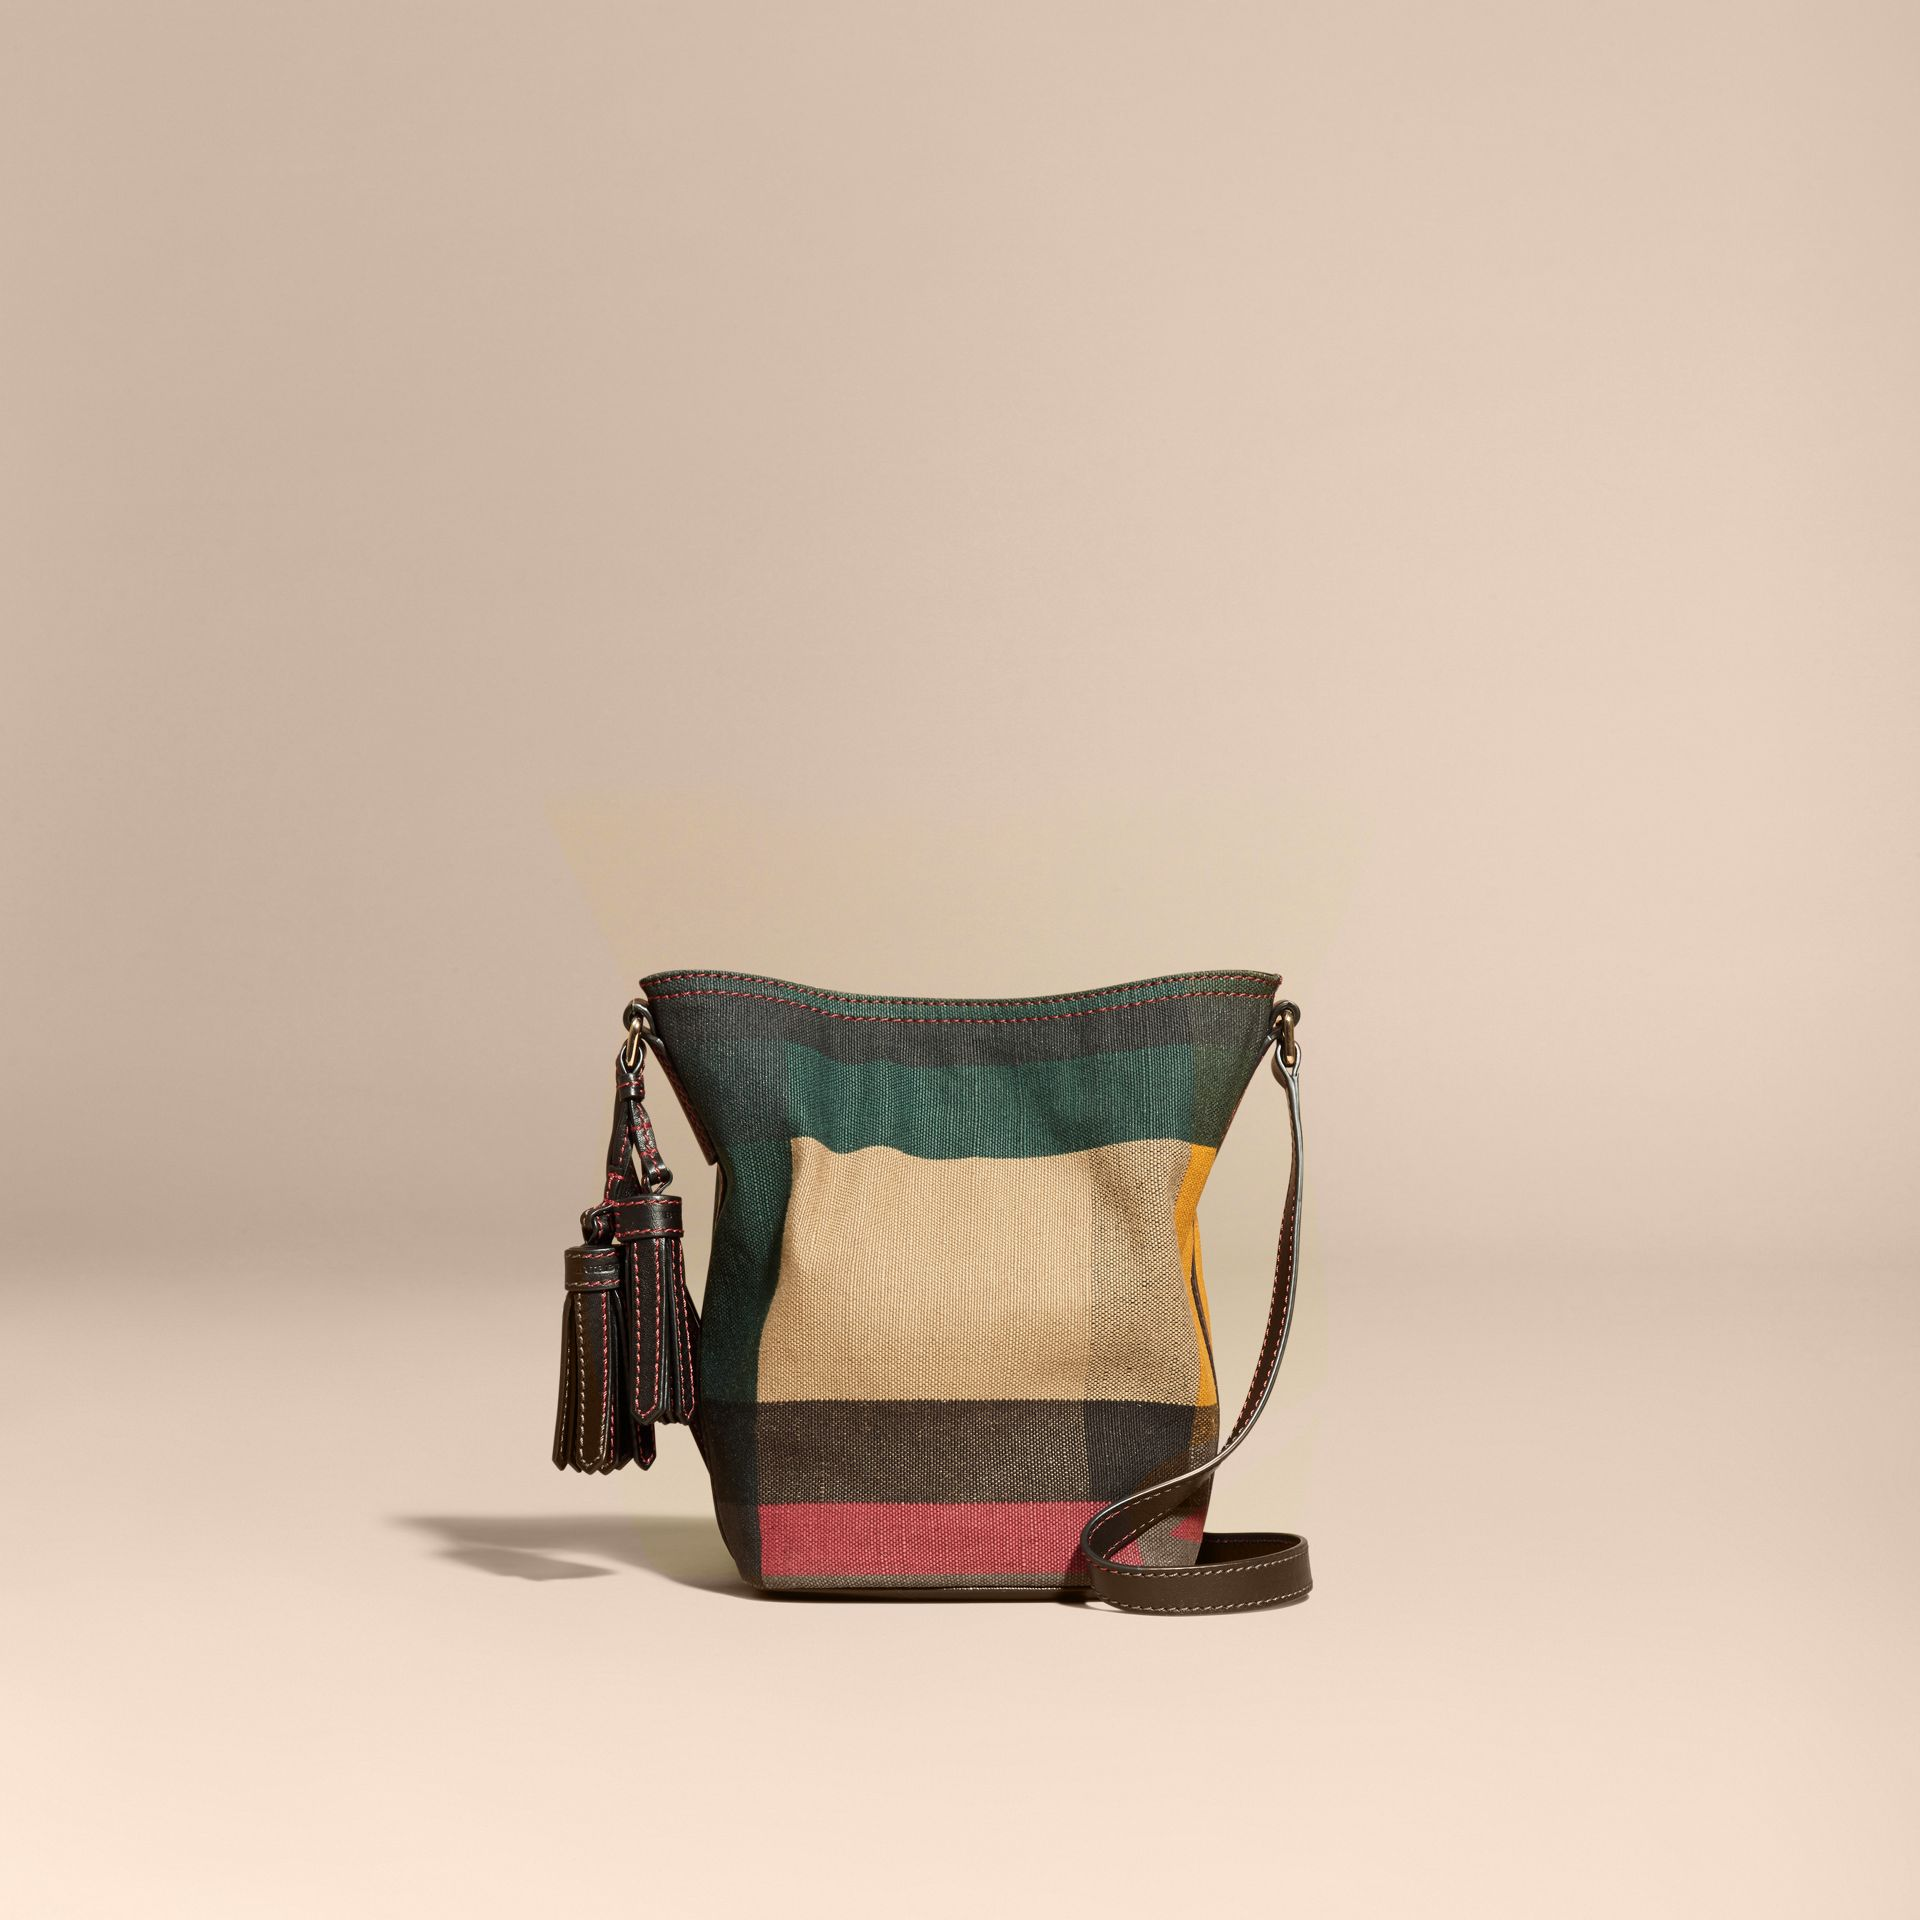 Black The Small Ashby in Printed Canvas Check and Leather - gallery image 8